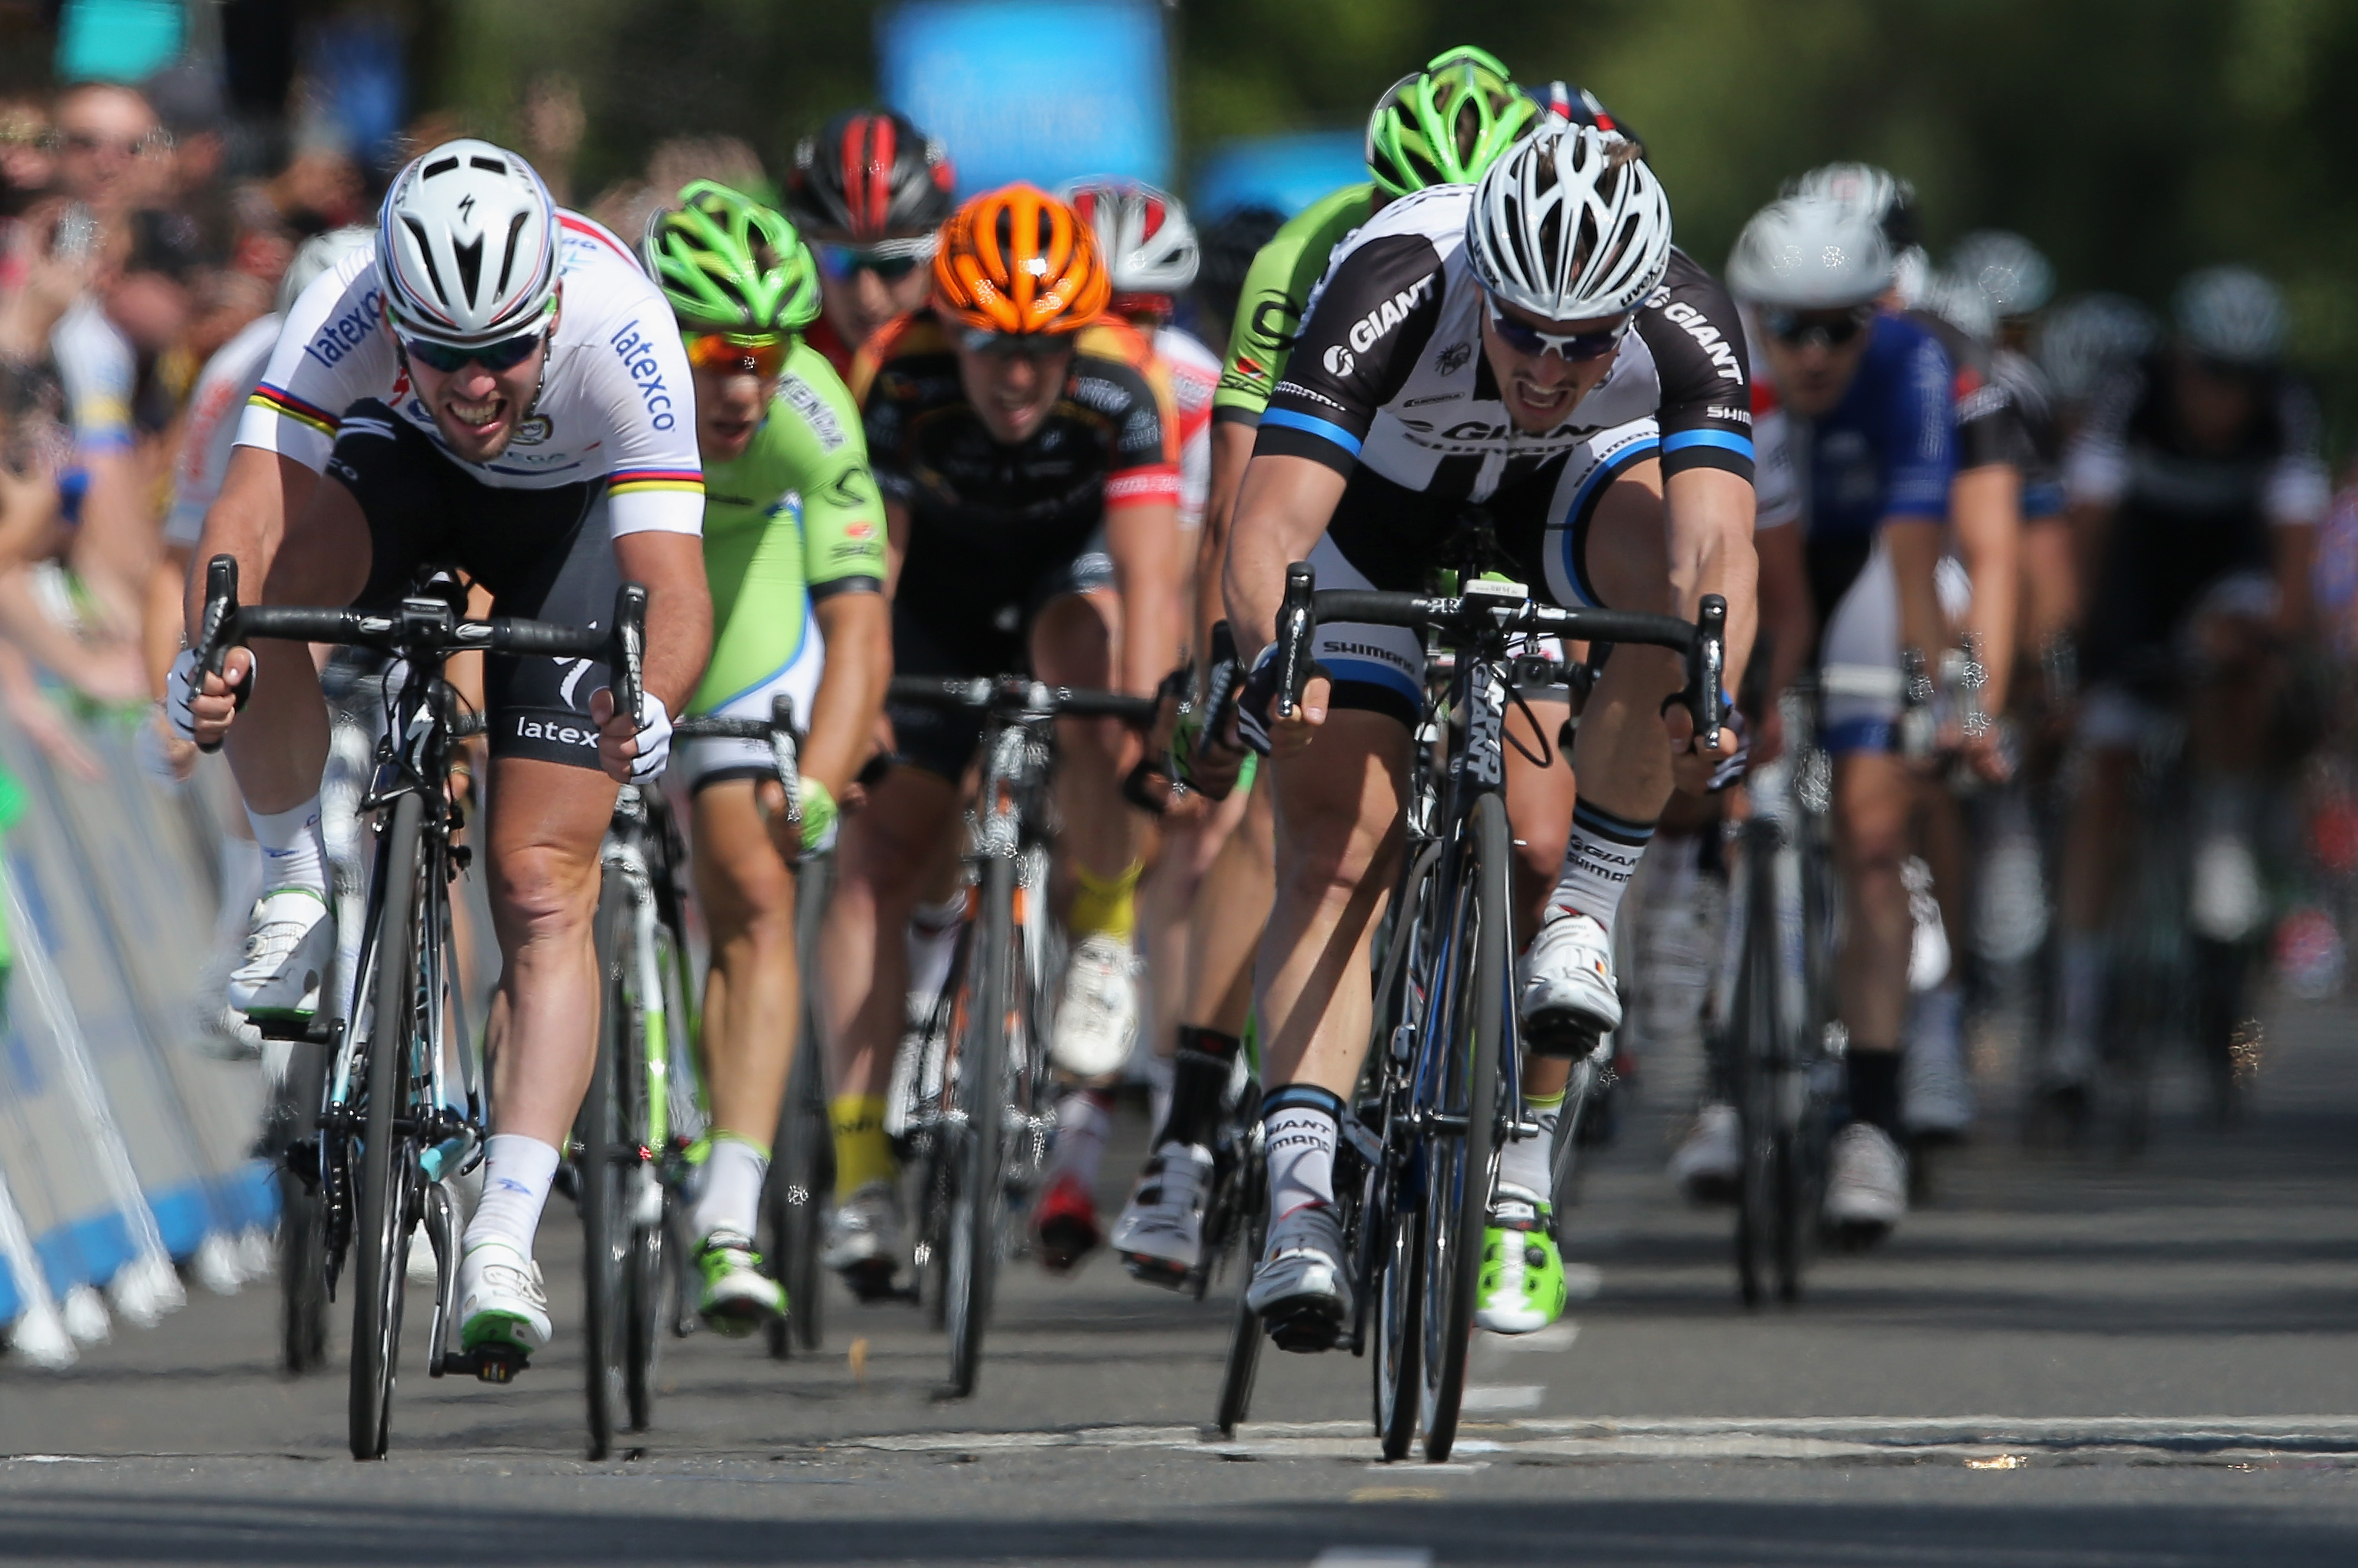 Tour of California: Wiggins Takes Charge With Time-Trial Win